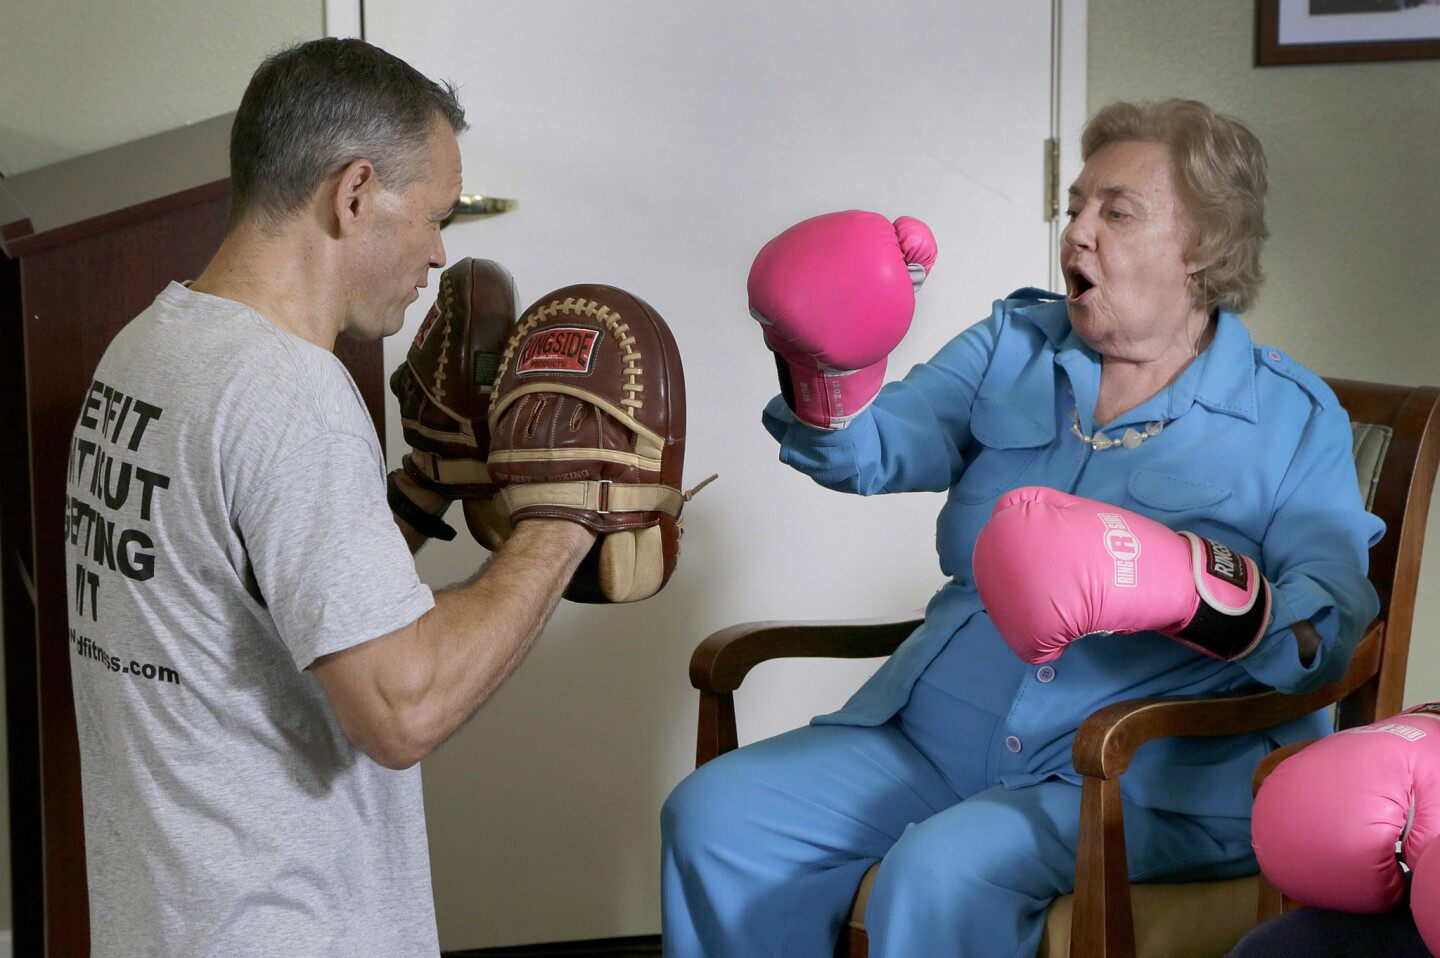 Senior citizens' boxing class